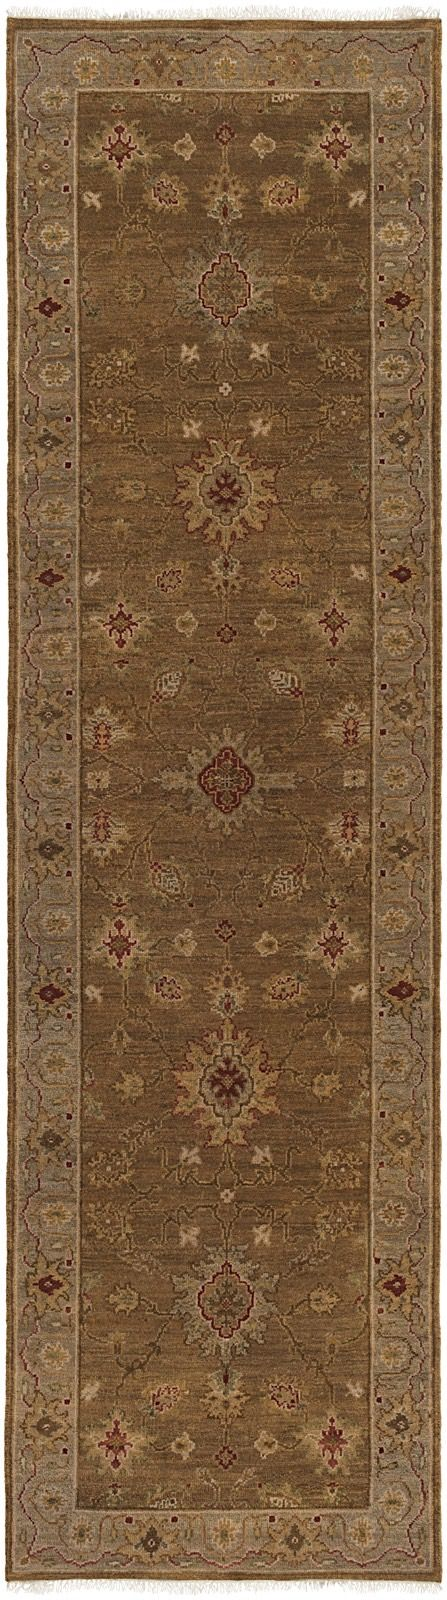 surya alanya traditional area rug collection